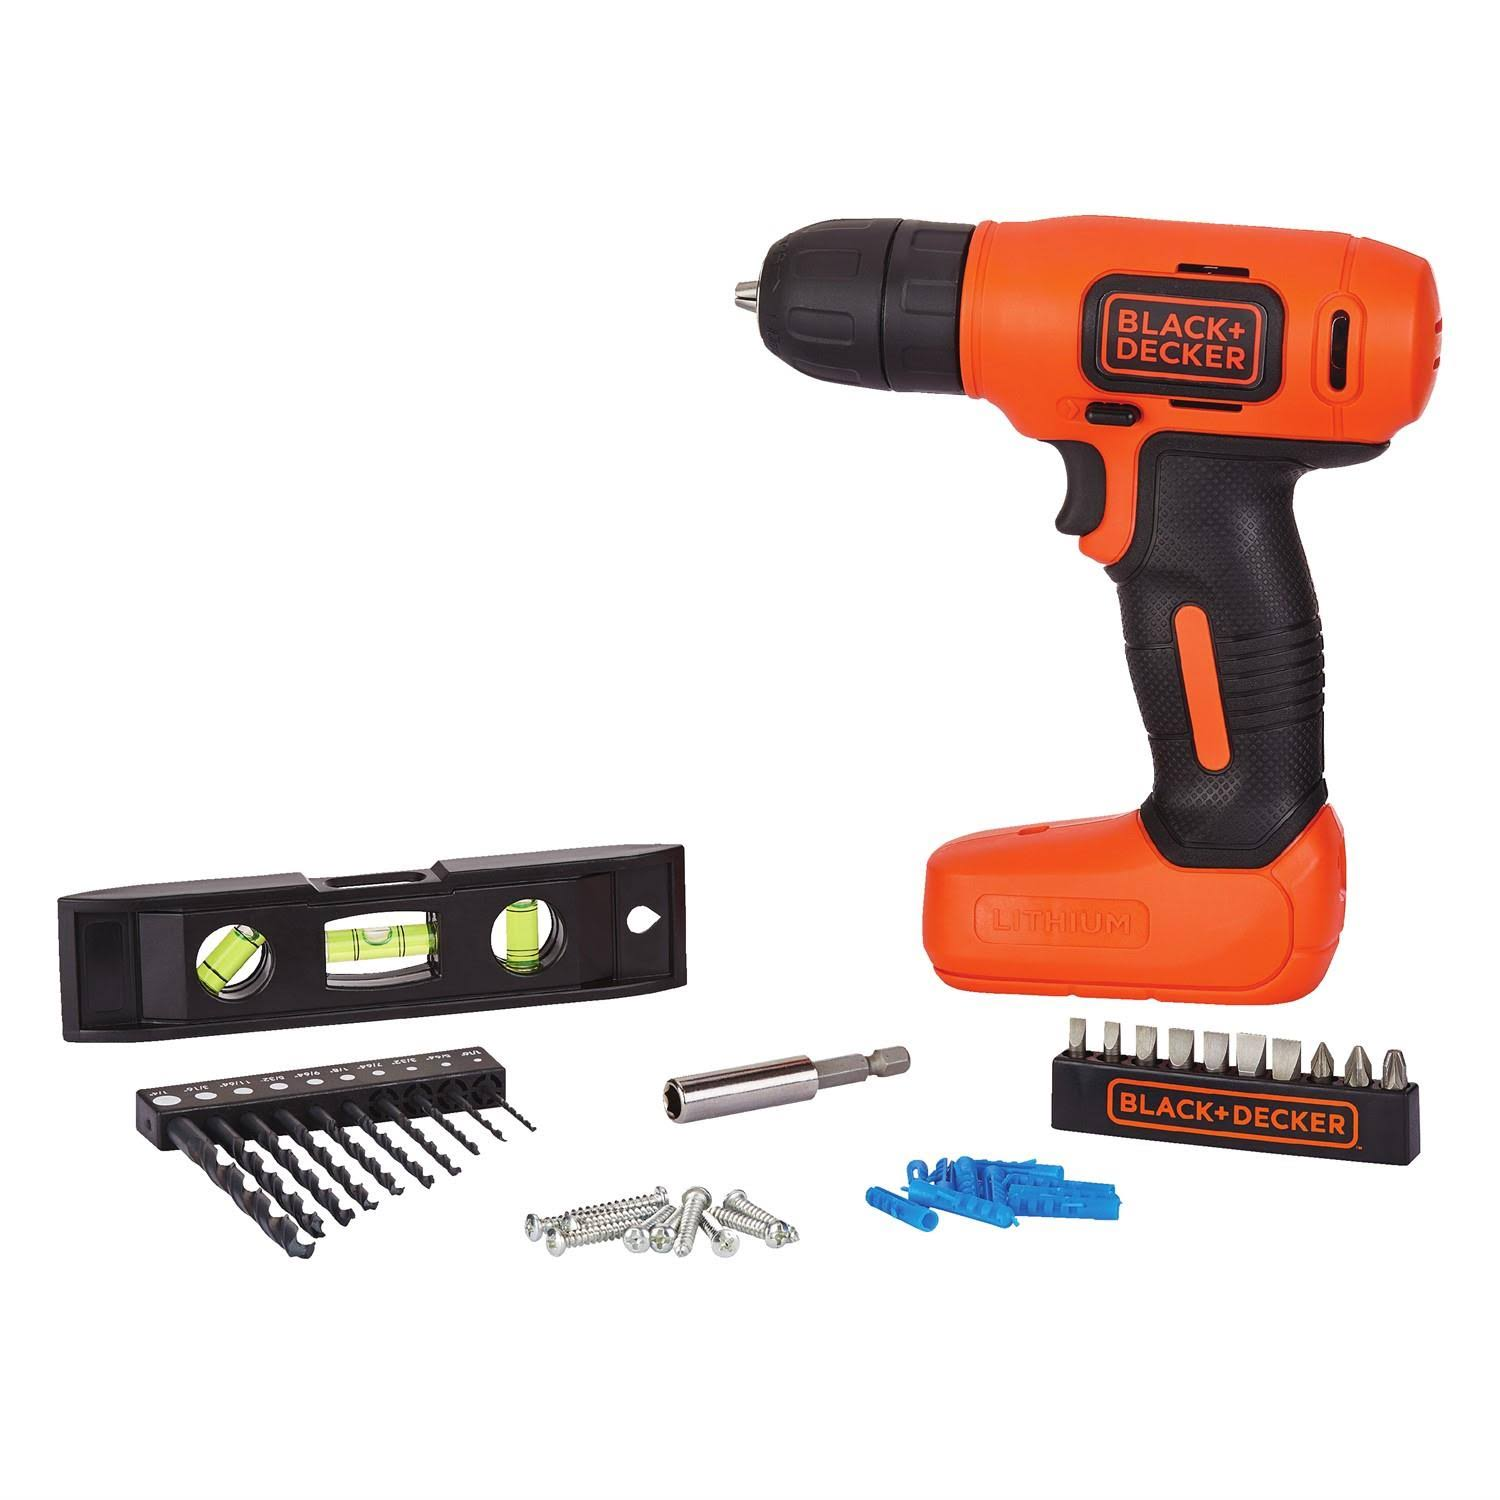 Black & Decker Home Project Kit - 8V